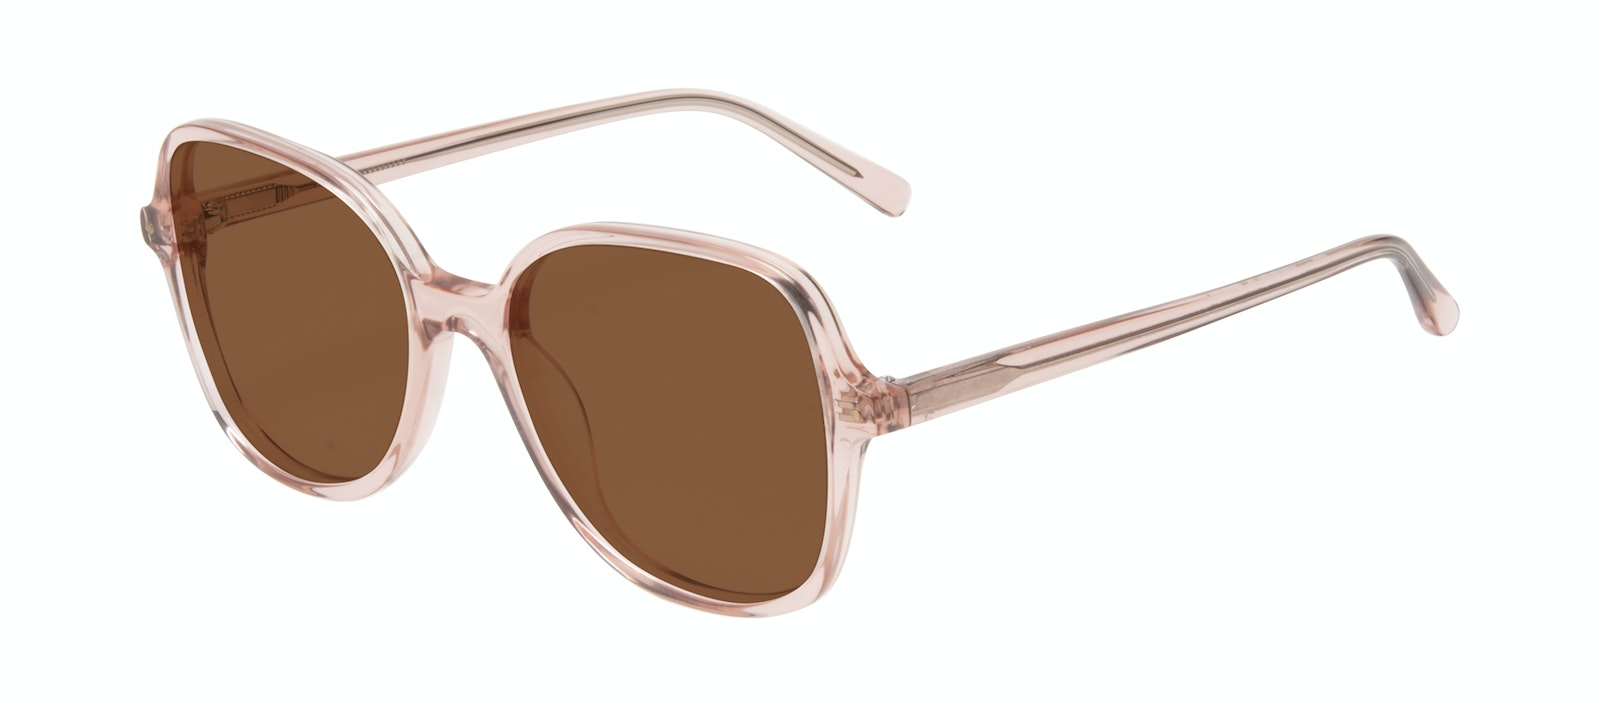 Affordable Fashion Glasses Square Sunglasses Women Scene Rose Tilt